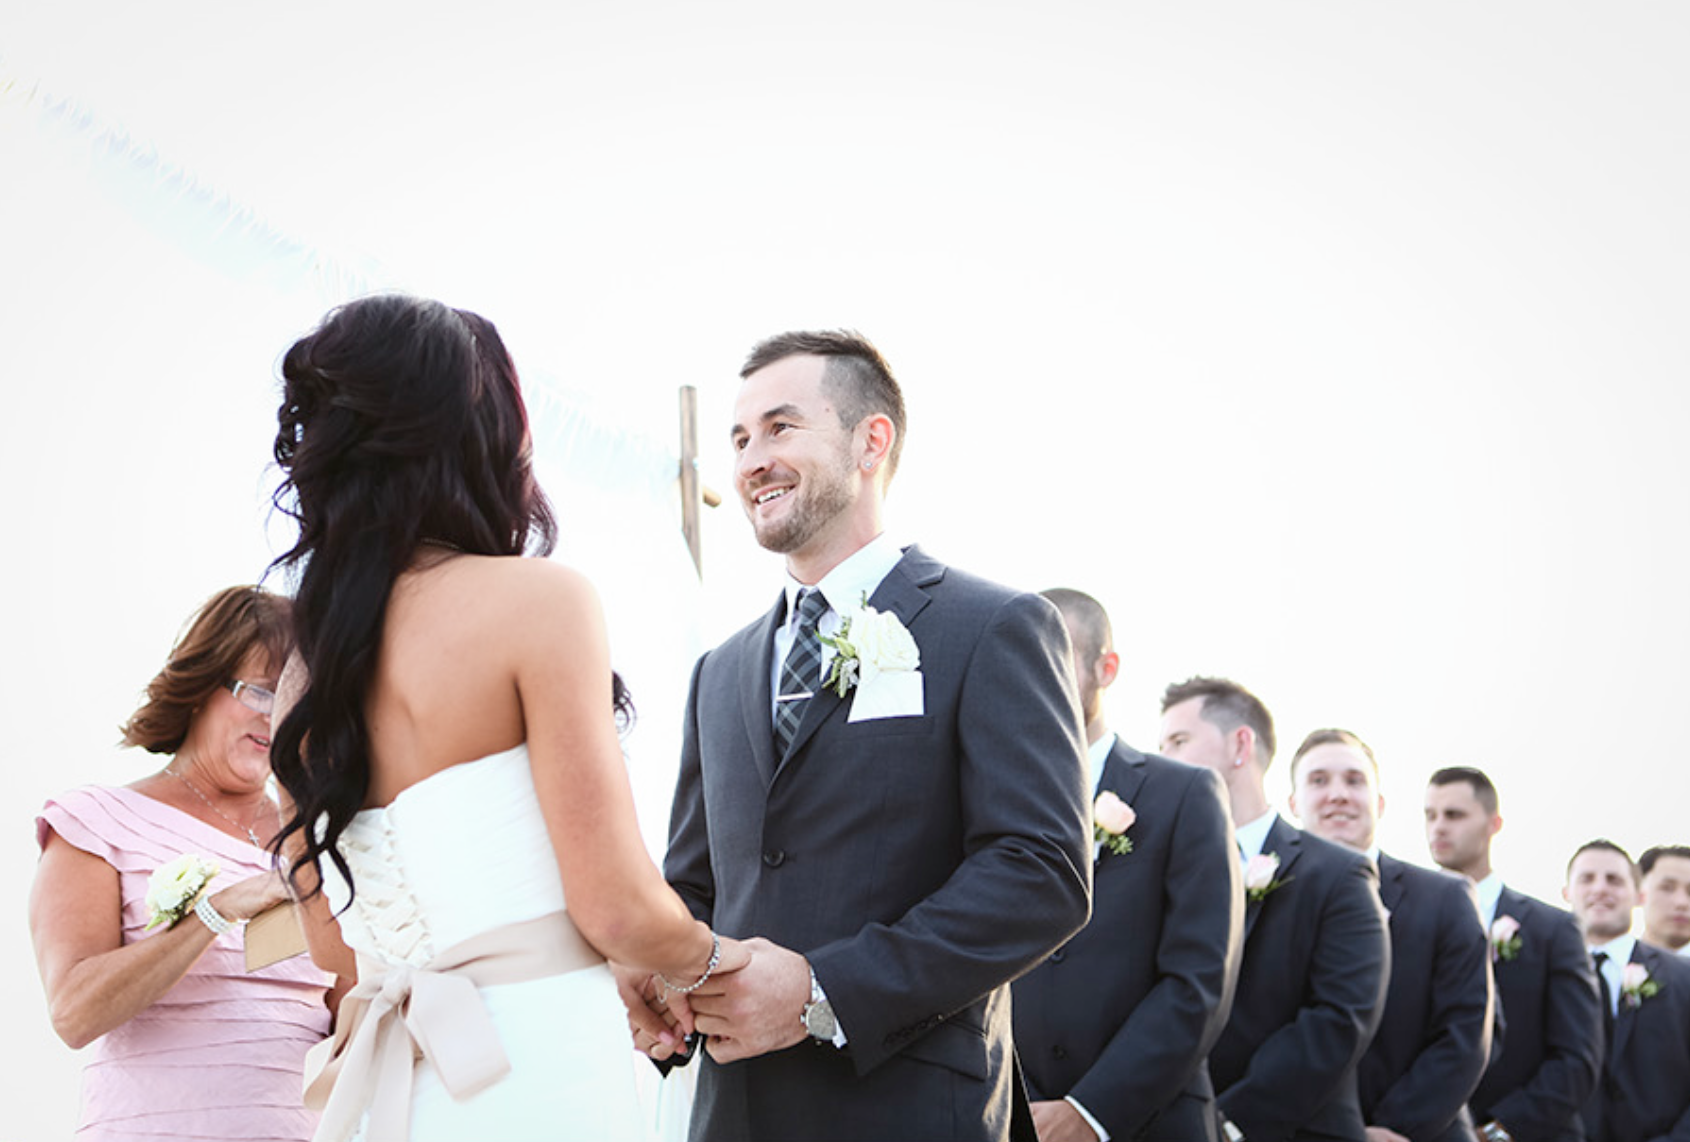 little miss lovely // ocean city maryland wedding florist // photo by sarah murray photography